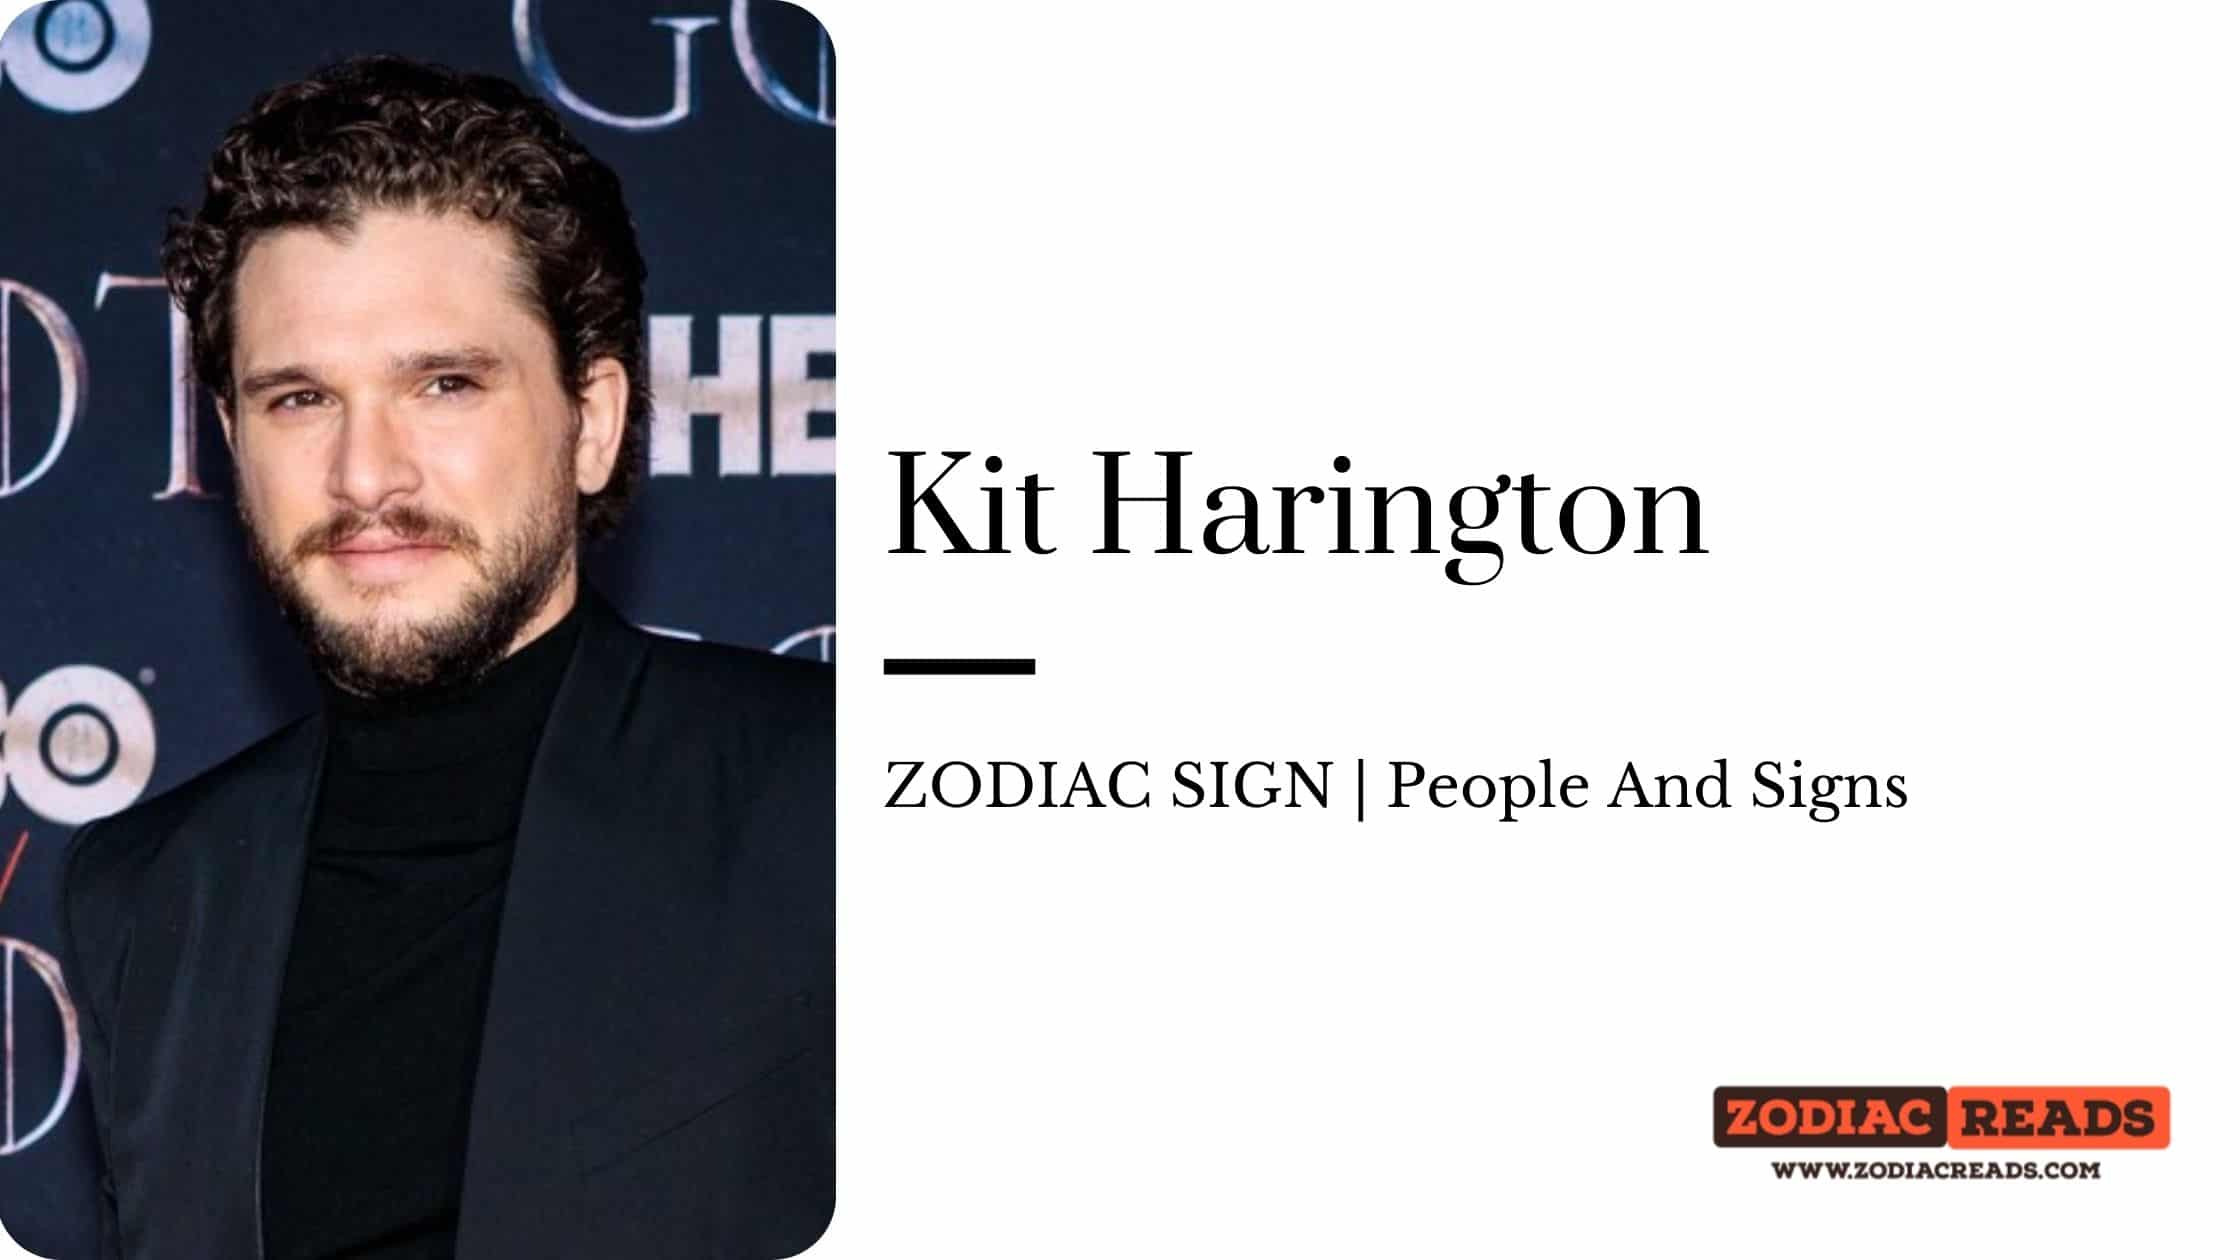 Kit Harington zodiac